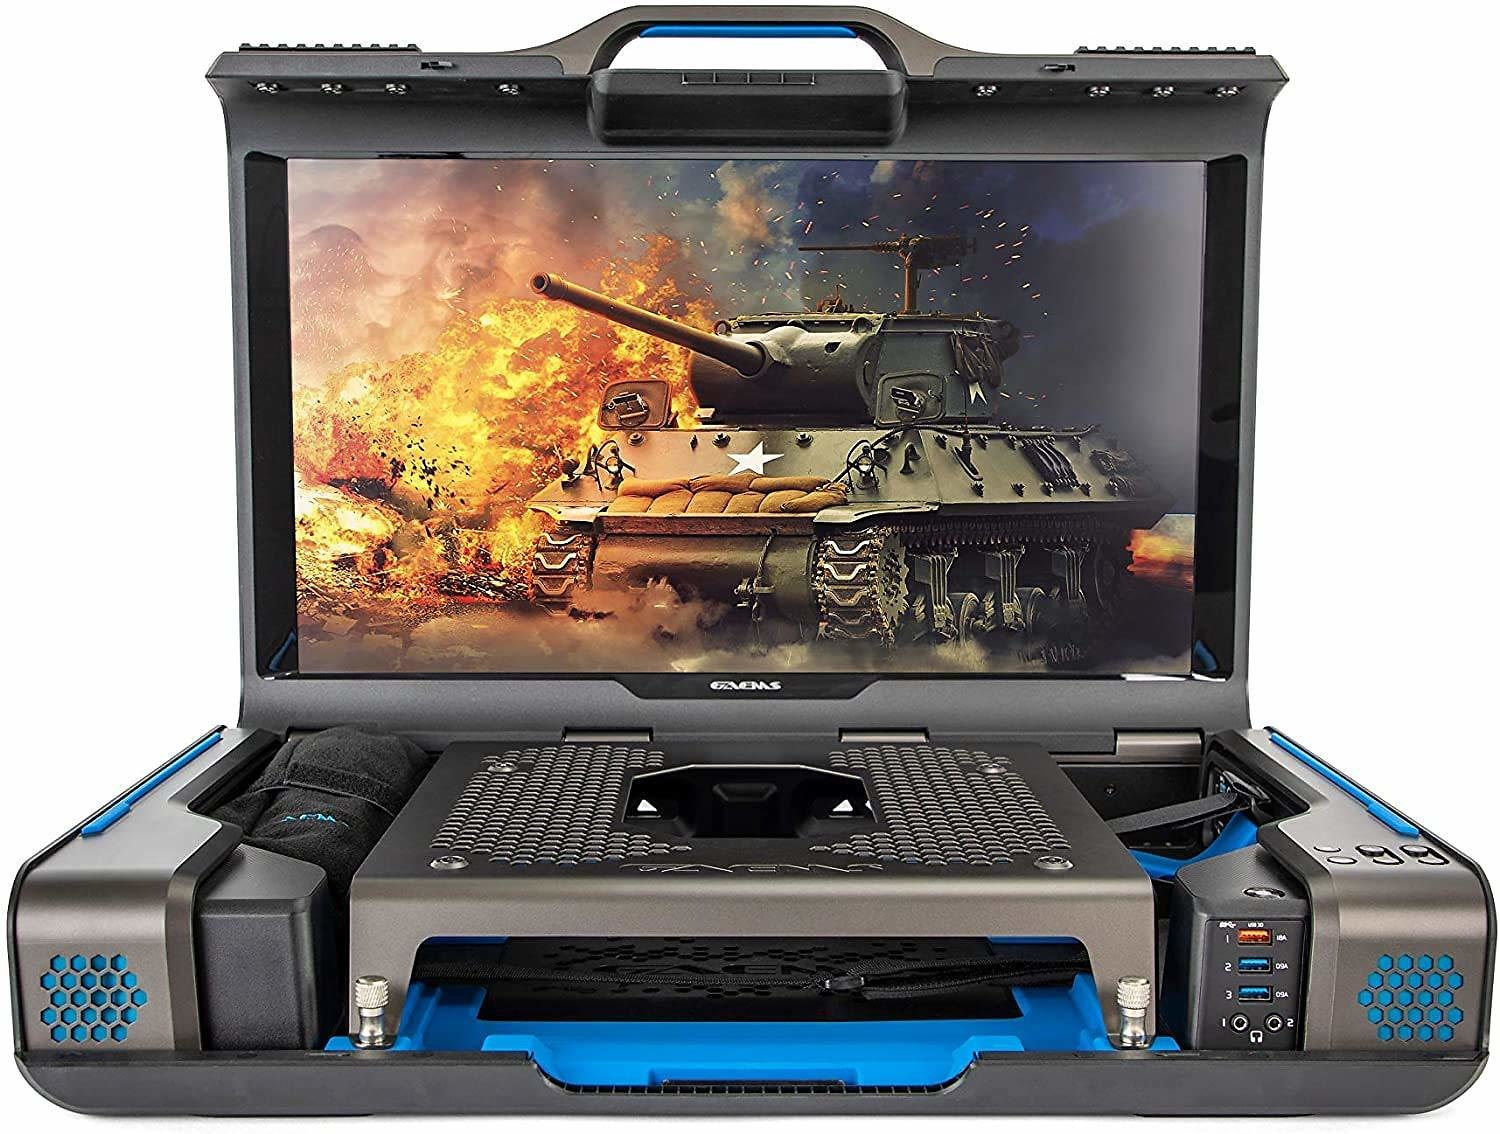 GAEMS Guardian Pro Xp - Ultimate Gaming Environment for PS4, Pro, Xbox One S, Xbox One X, Atx PC ( Consoles Not Included) - Not Machine Specific: Video Games